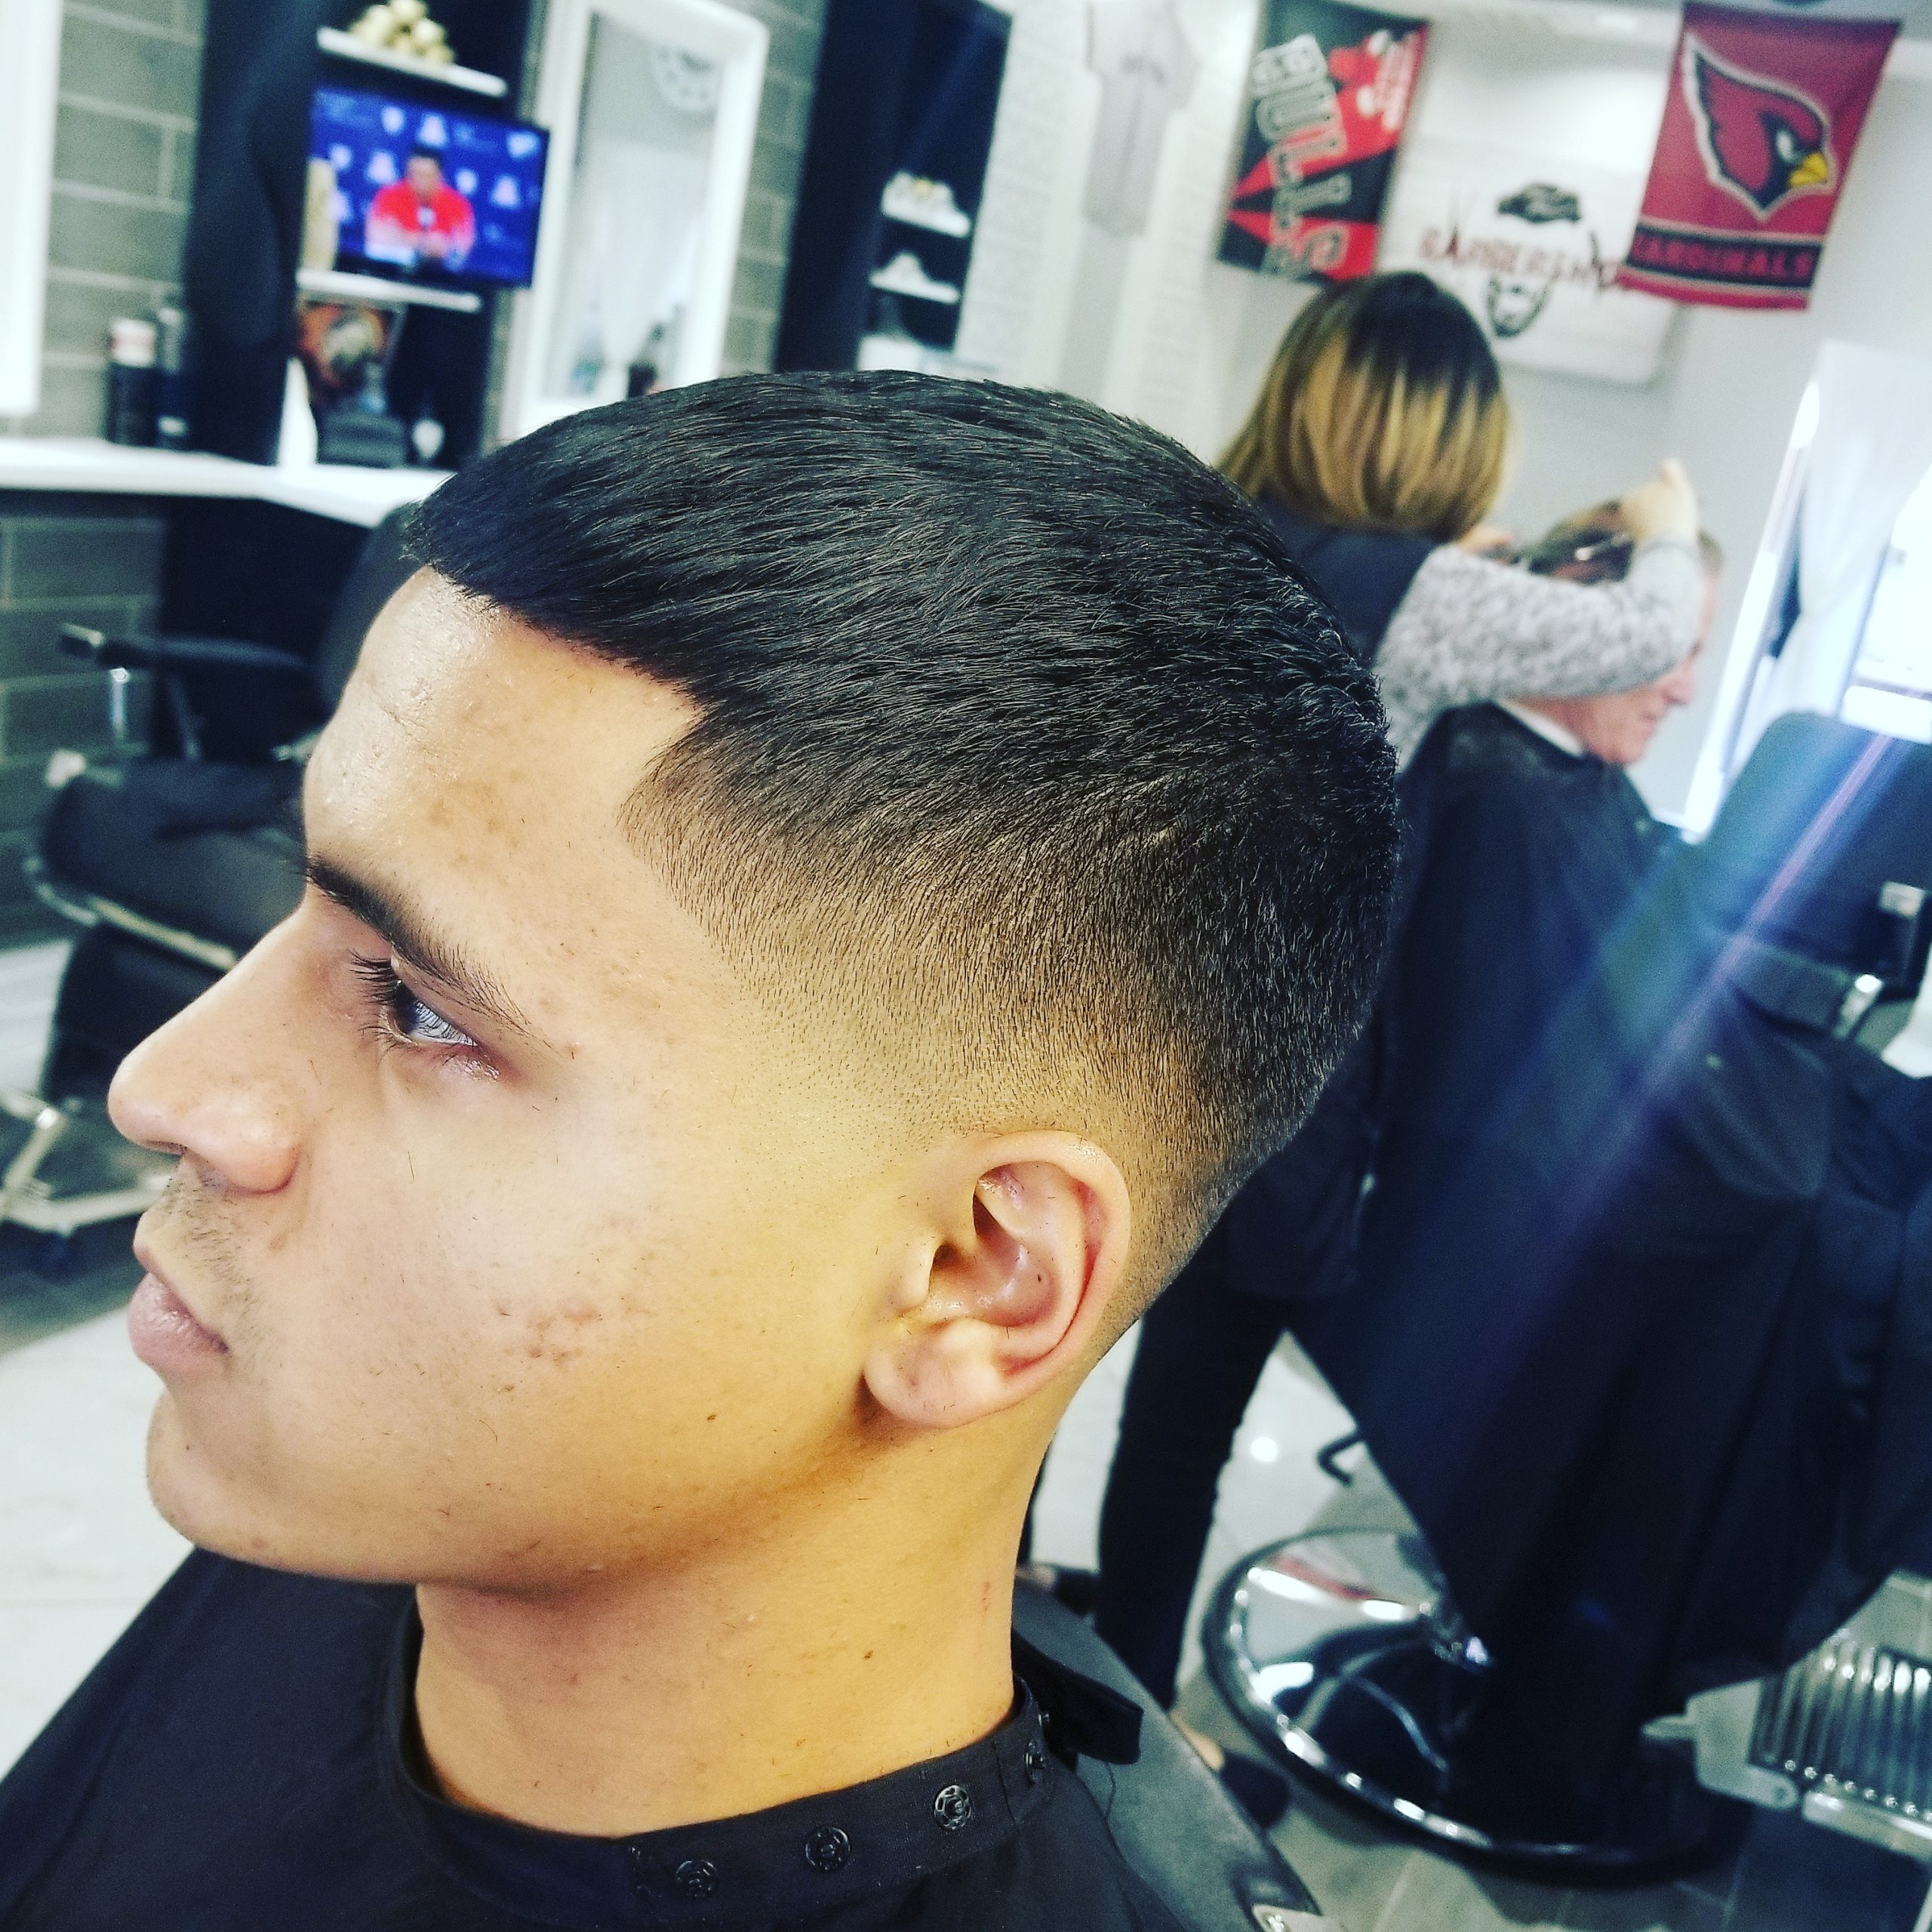 https://signaturebarbershop.net/wp-content/uploads/2020/11/gallery_full-5-scaled.jpg